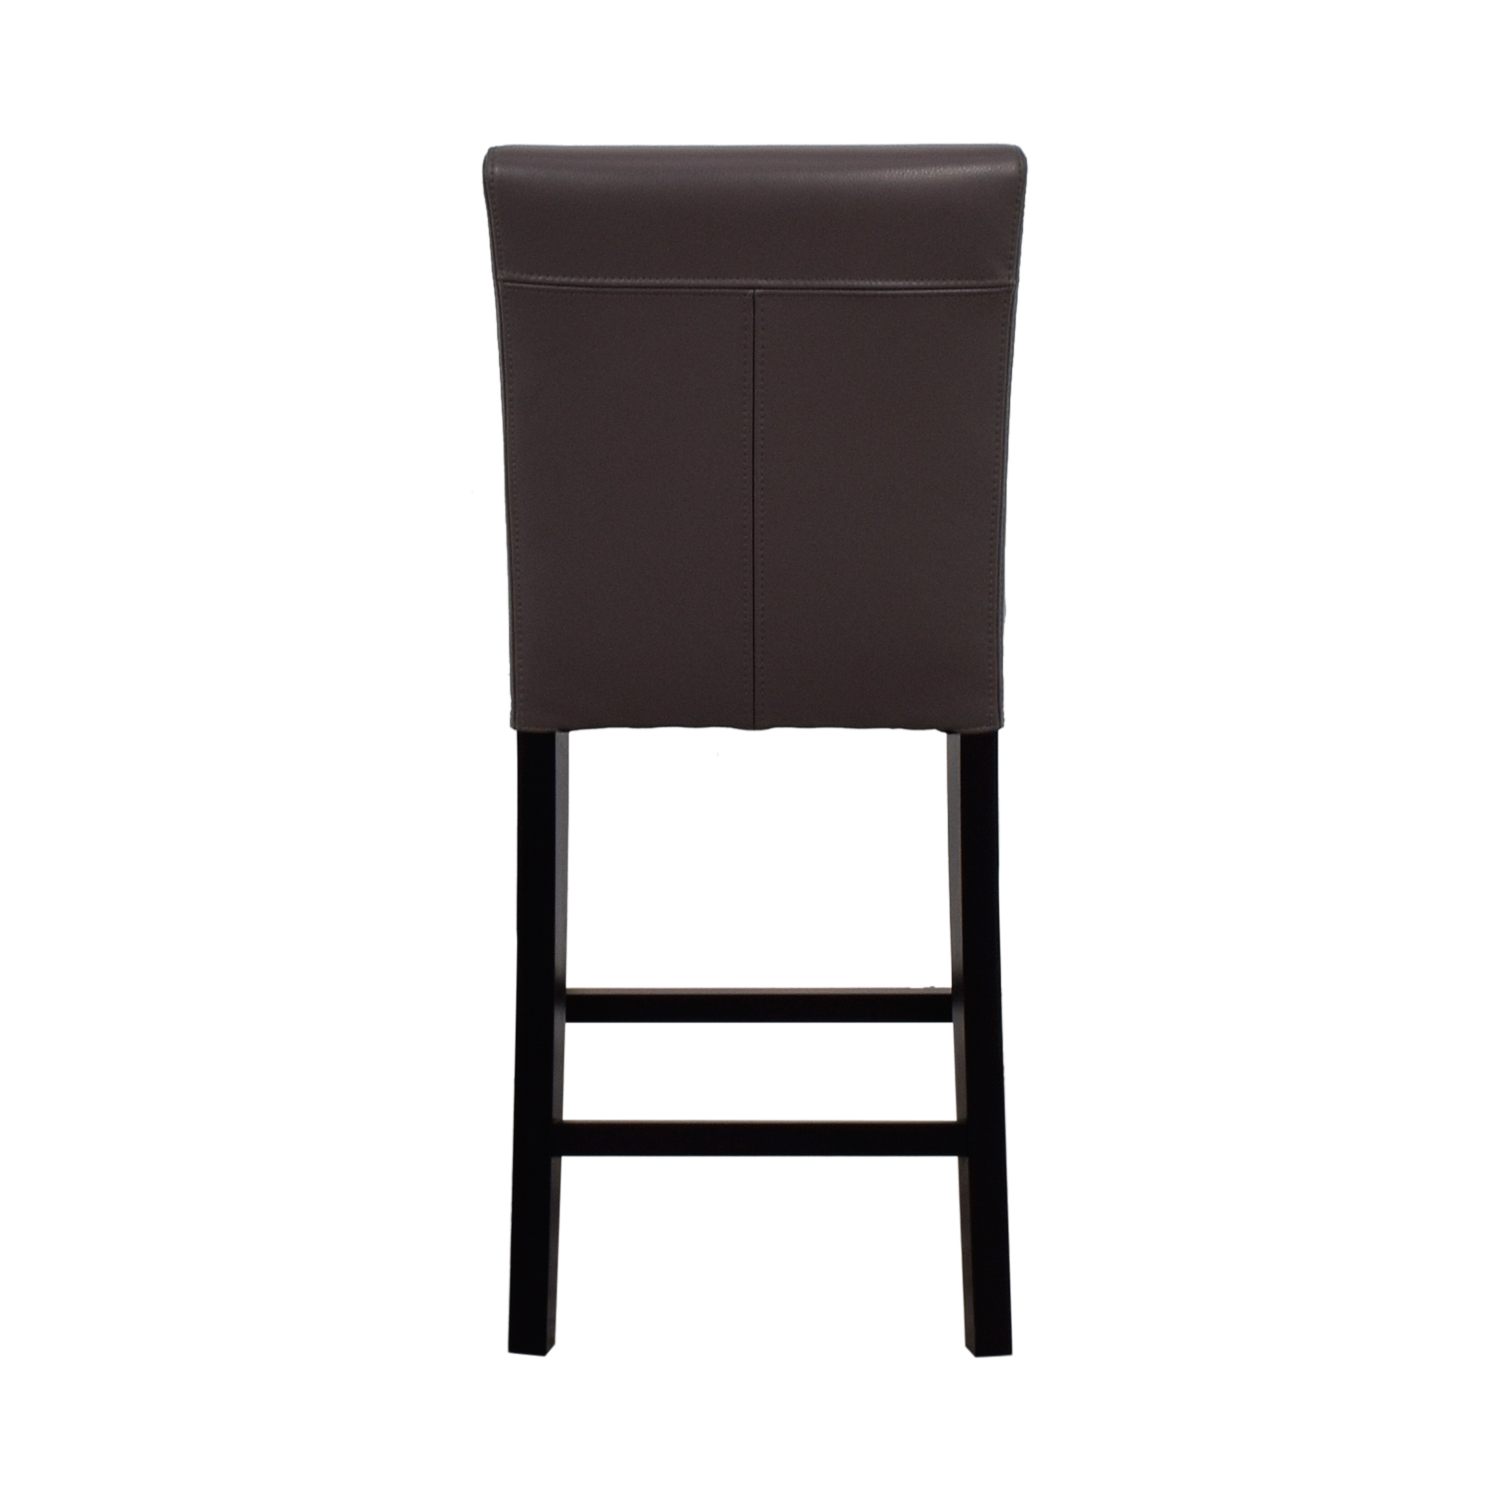 Crate & Barrel Crate & Barrel Lowe Leather Counter Stool discount